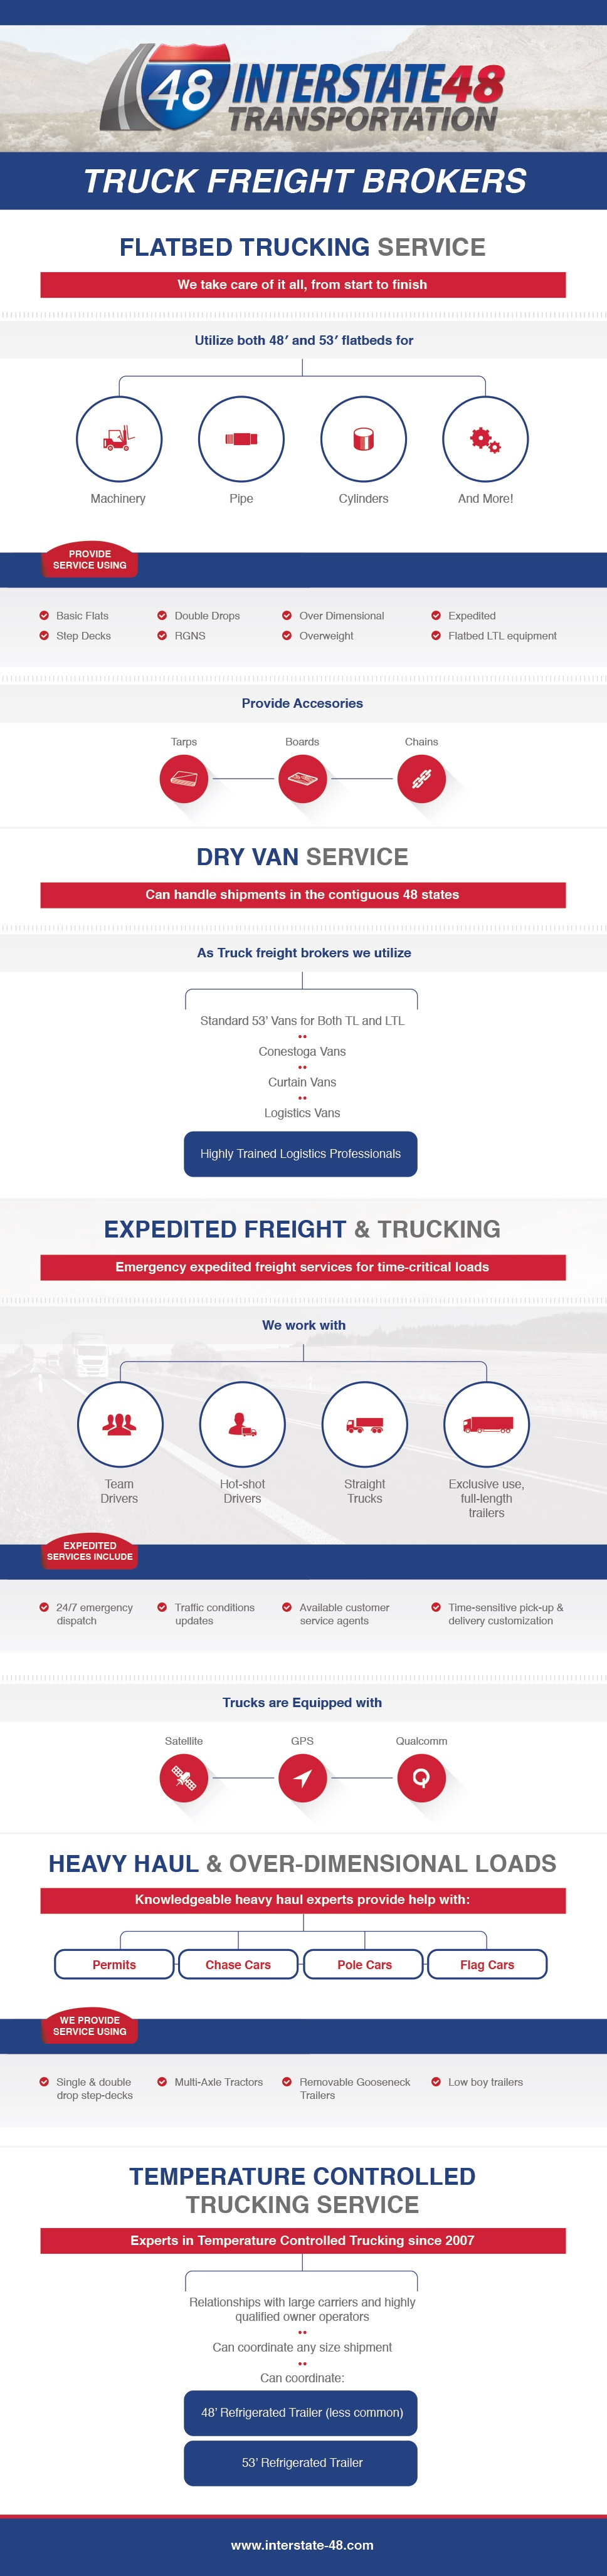 Interstate48_Infographic_(1)_rand_sT32kUjUA9